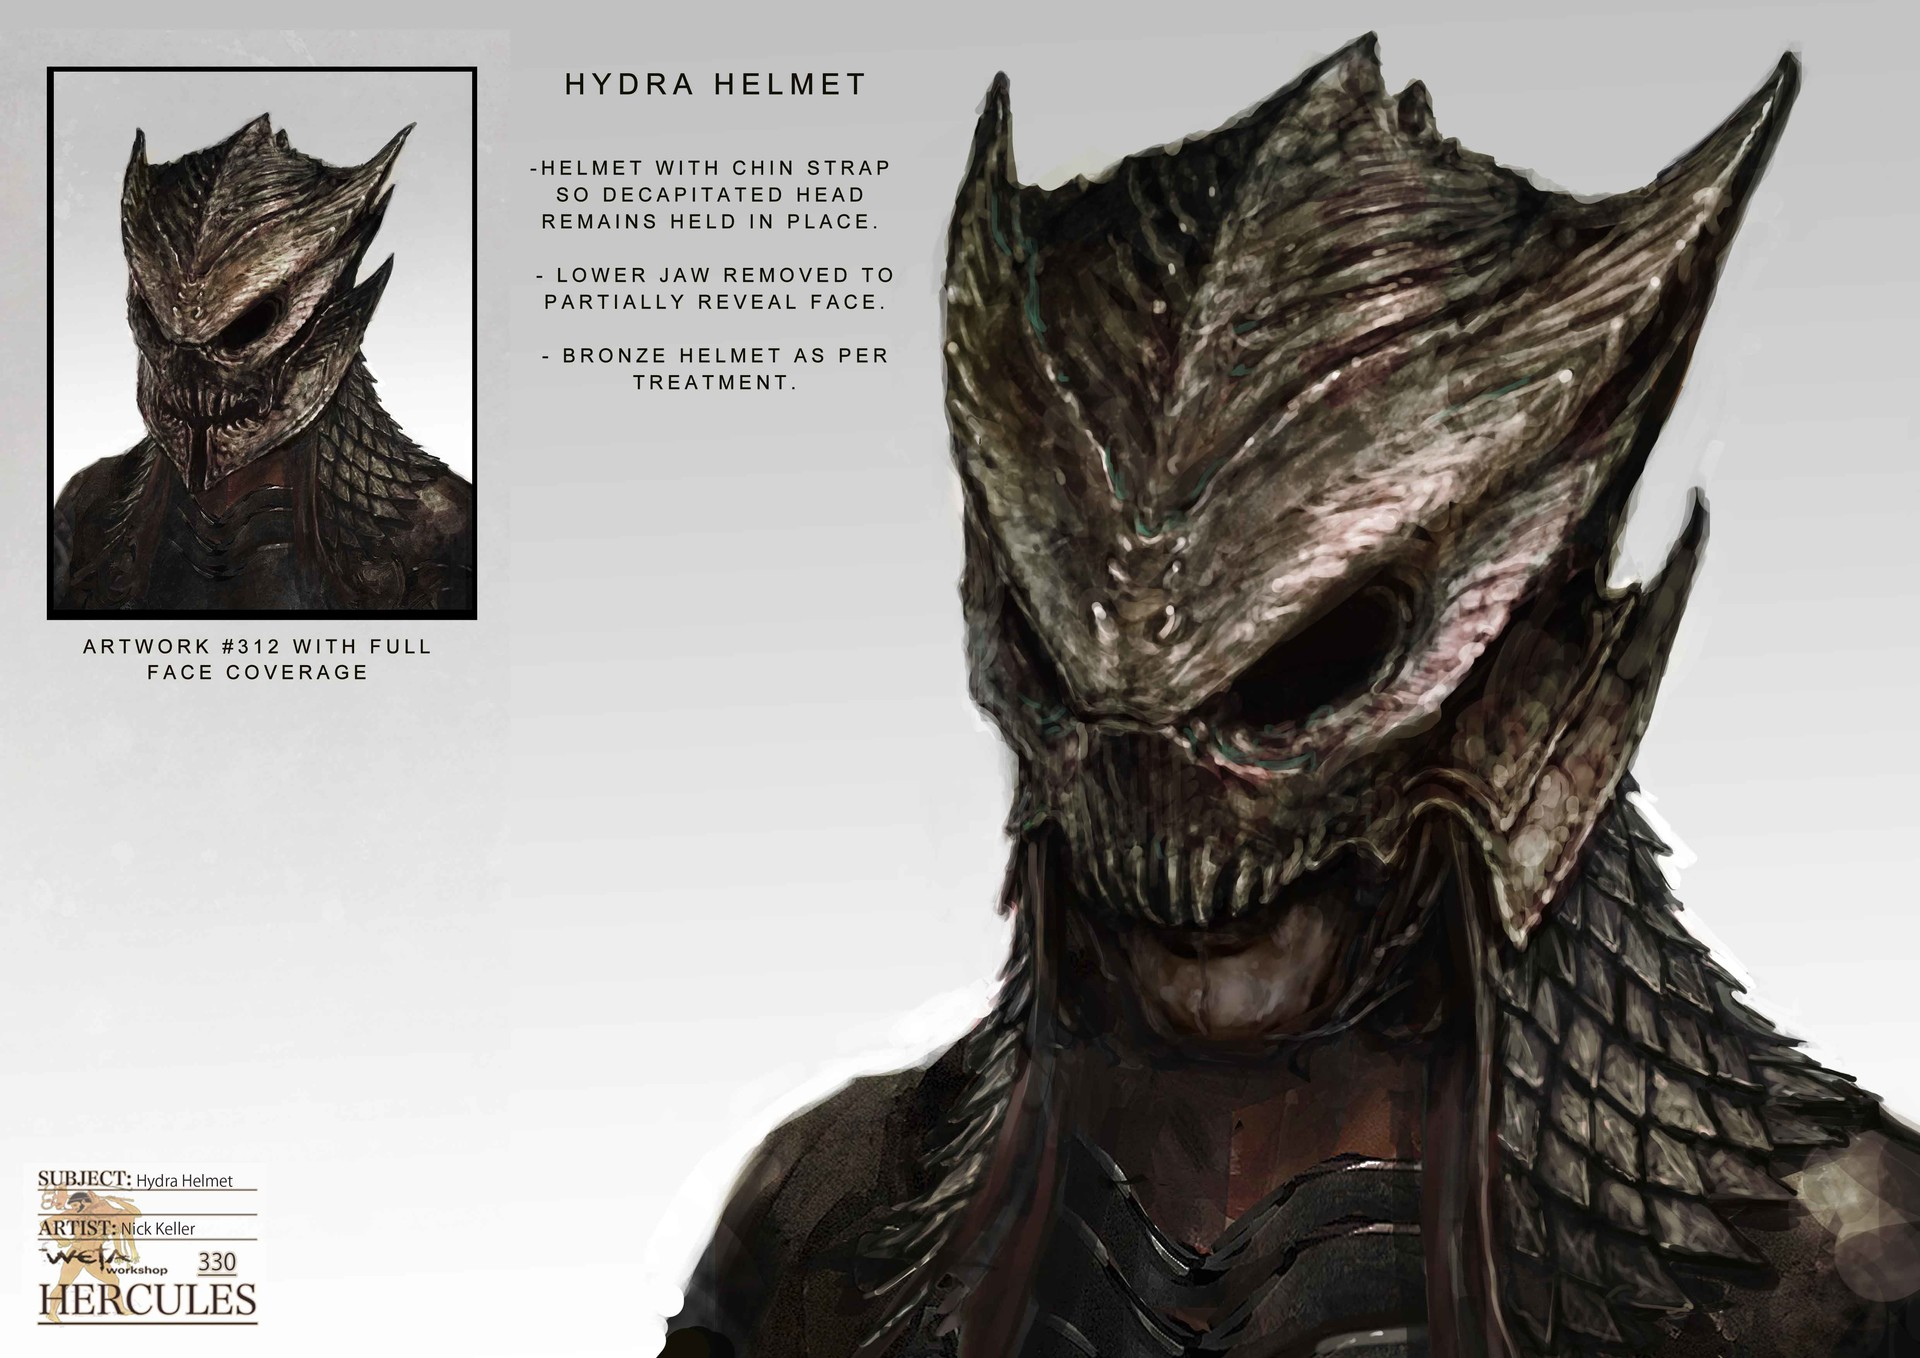 Weta workshop design studio 330 hydra helmet 04 nk